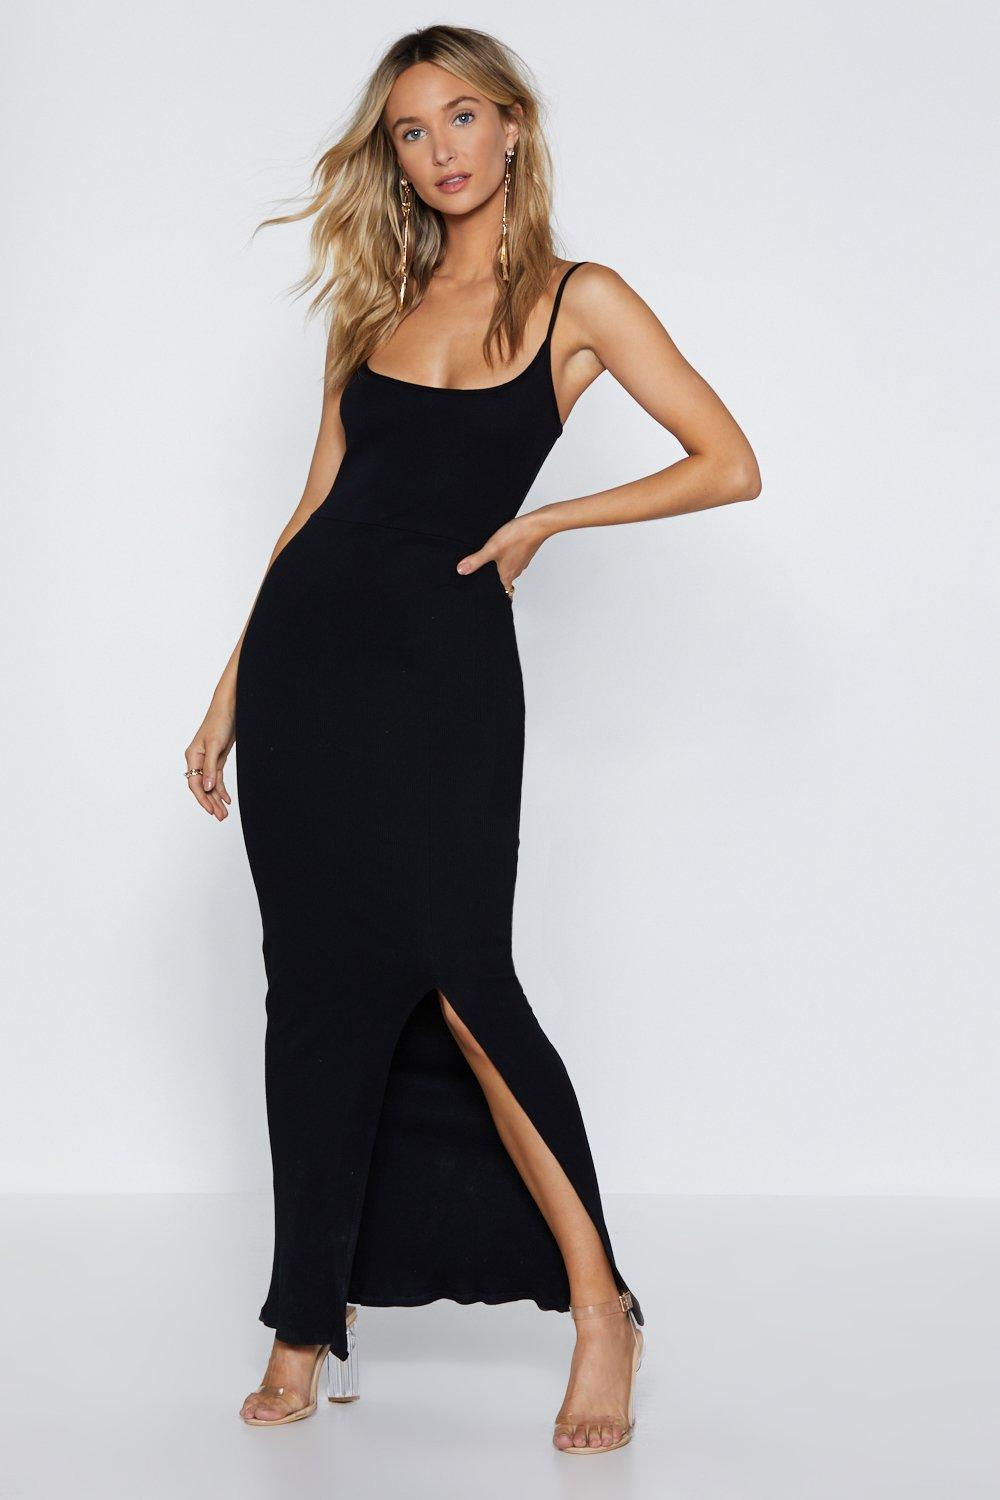 f5860530a72 Womens Black Take Me Out Maxi Dress. Hover to zoom